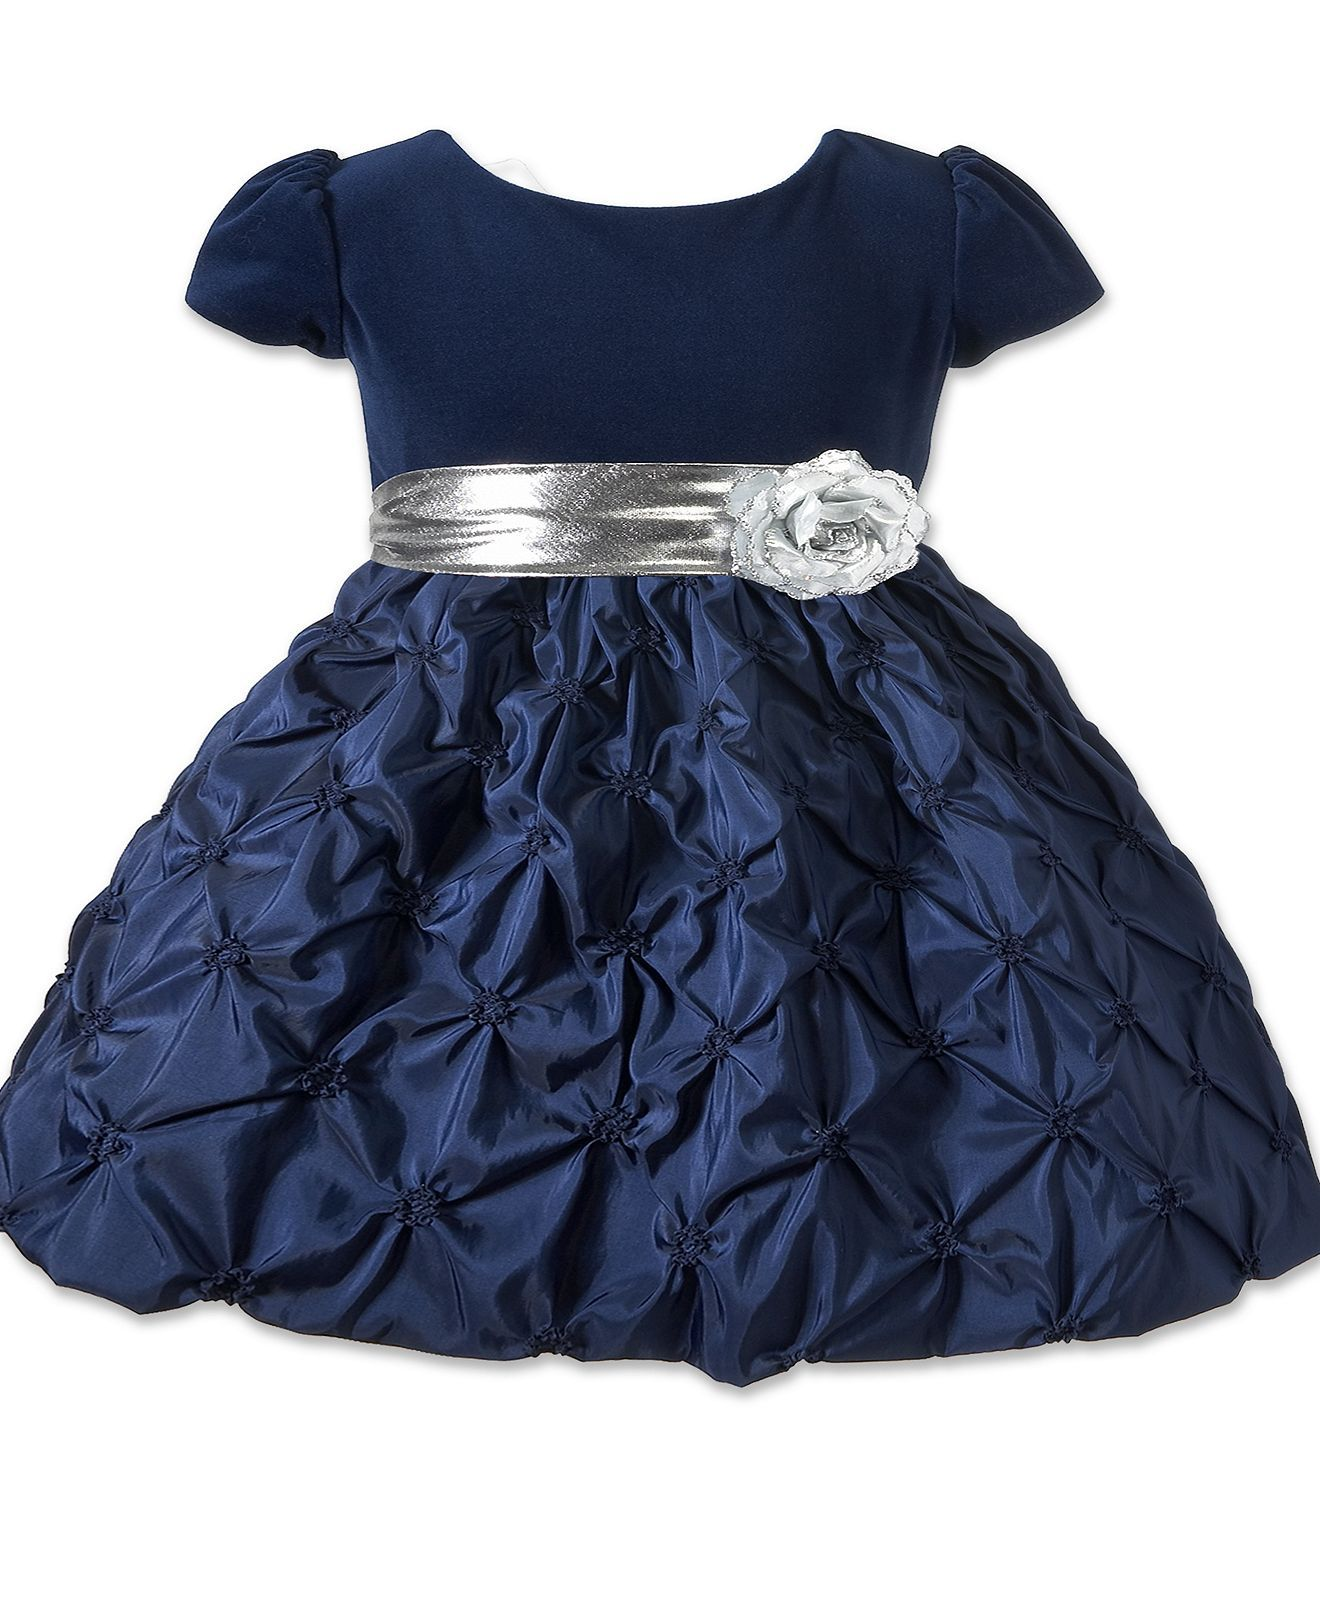 65ff2fe540be Princess Faith Kids Dress, Baby Girls Special Occasion Dress with Sash -  Kids Baby Girl (0-24 months) - Macy's